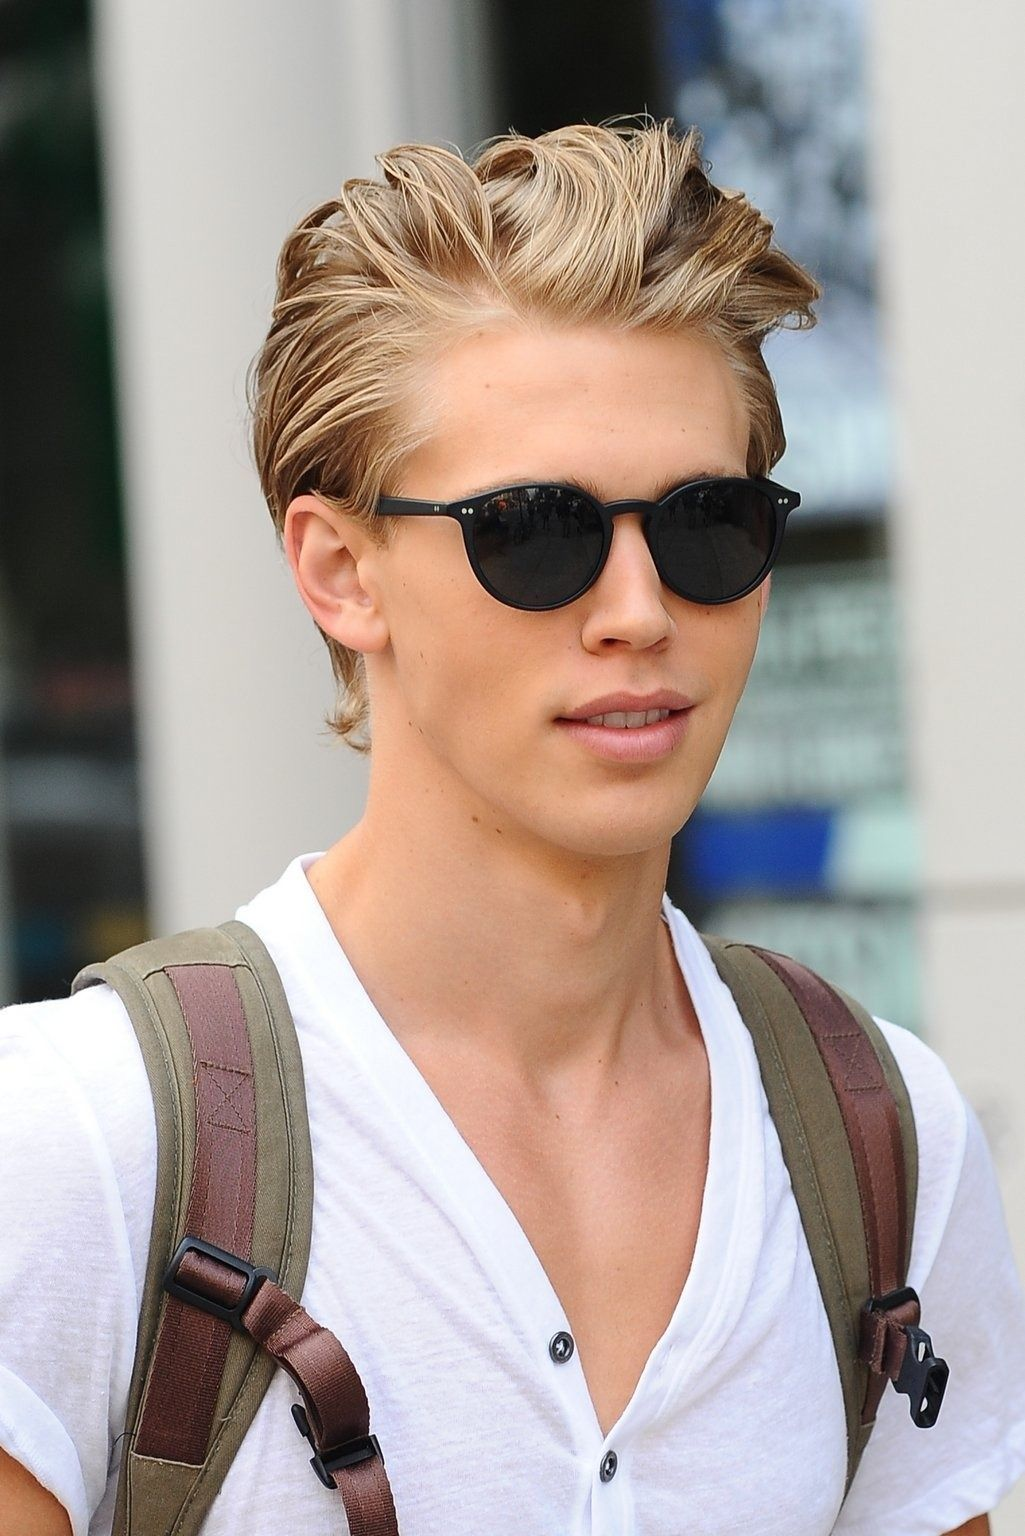 45 Best Short Haircuts For Men 2020 Styles Blonde Guys Haircuts For Men Thick Hair Styles